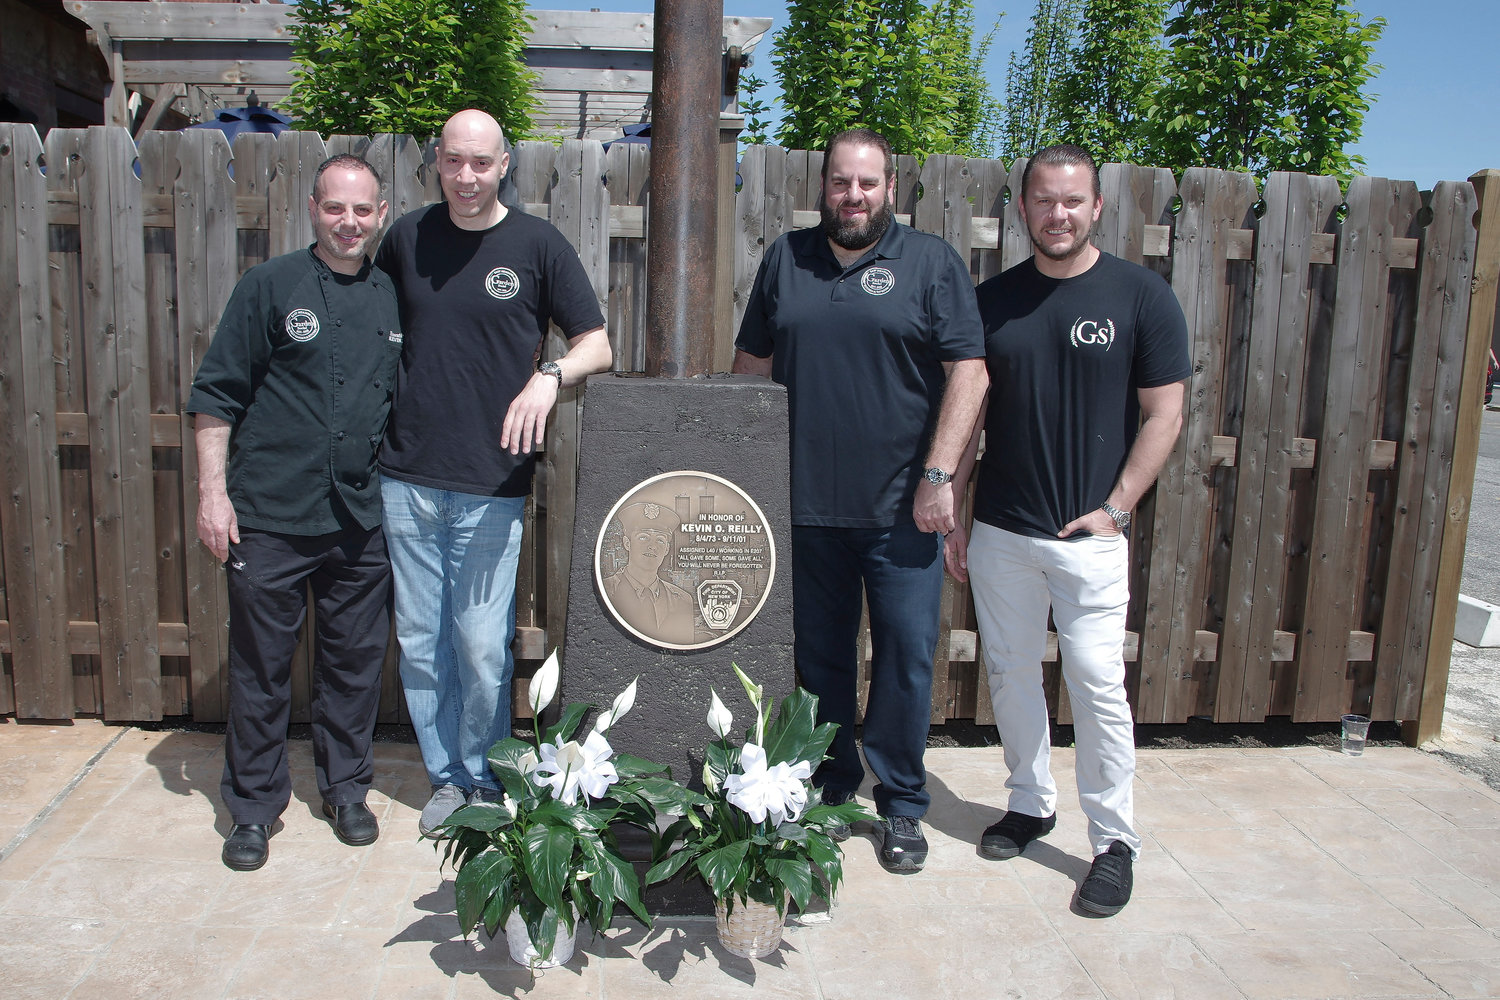 Kevin Liebov, James Paloumbis, Bob Russo and Dave Boller, all partners of Garden Social in East Meadow, dedicated a plaque to their close friend Kevin O'Reilly, who died responding to the September 11, 2001 terrorist attacks in Manhattan.